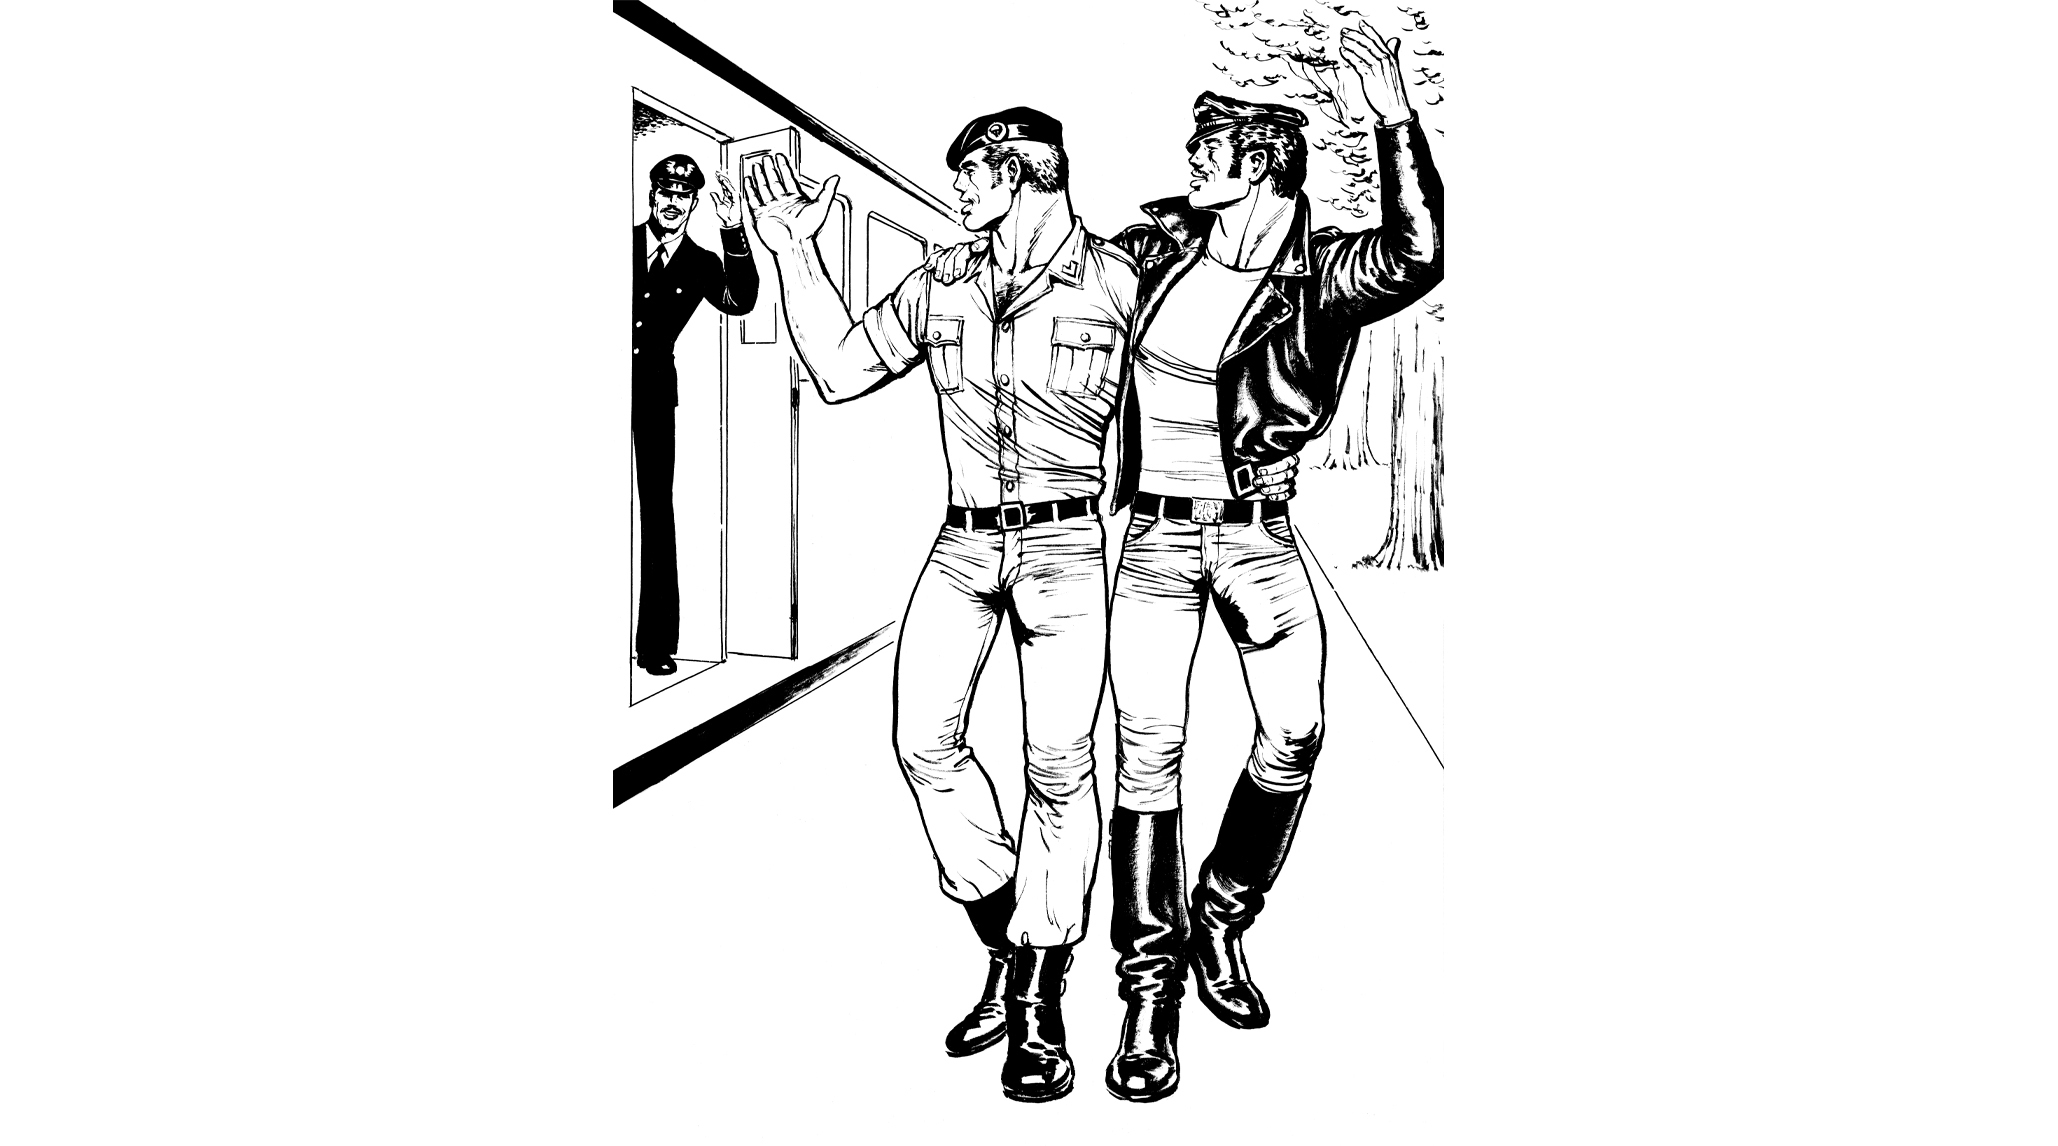 Tom of Finland: Love and Liberation